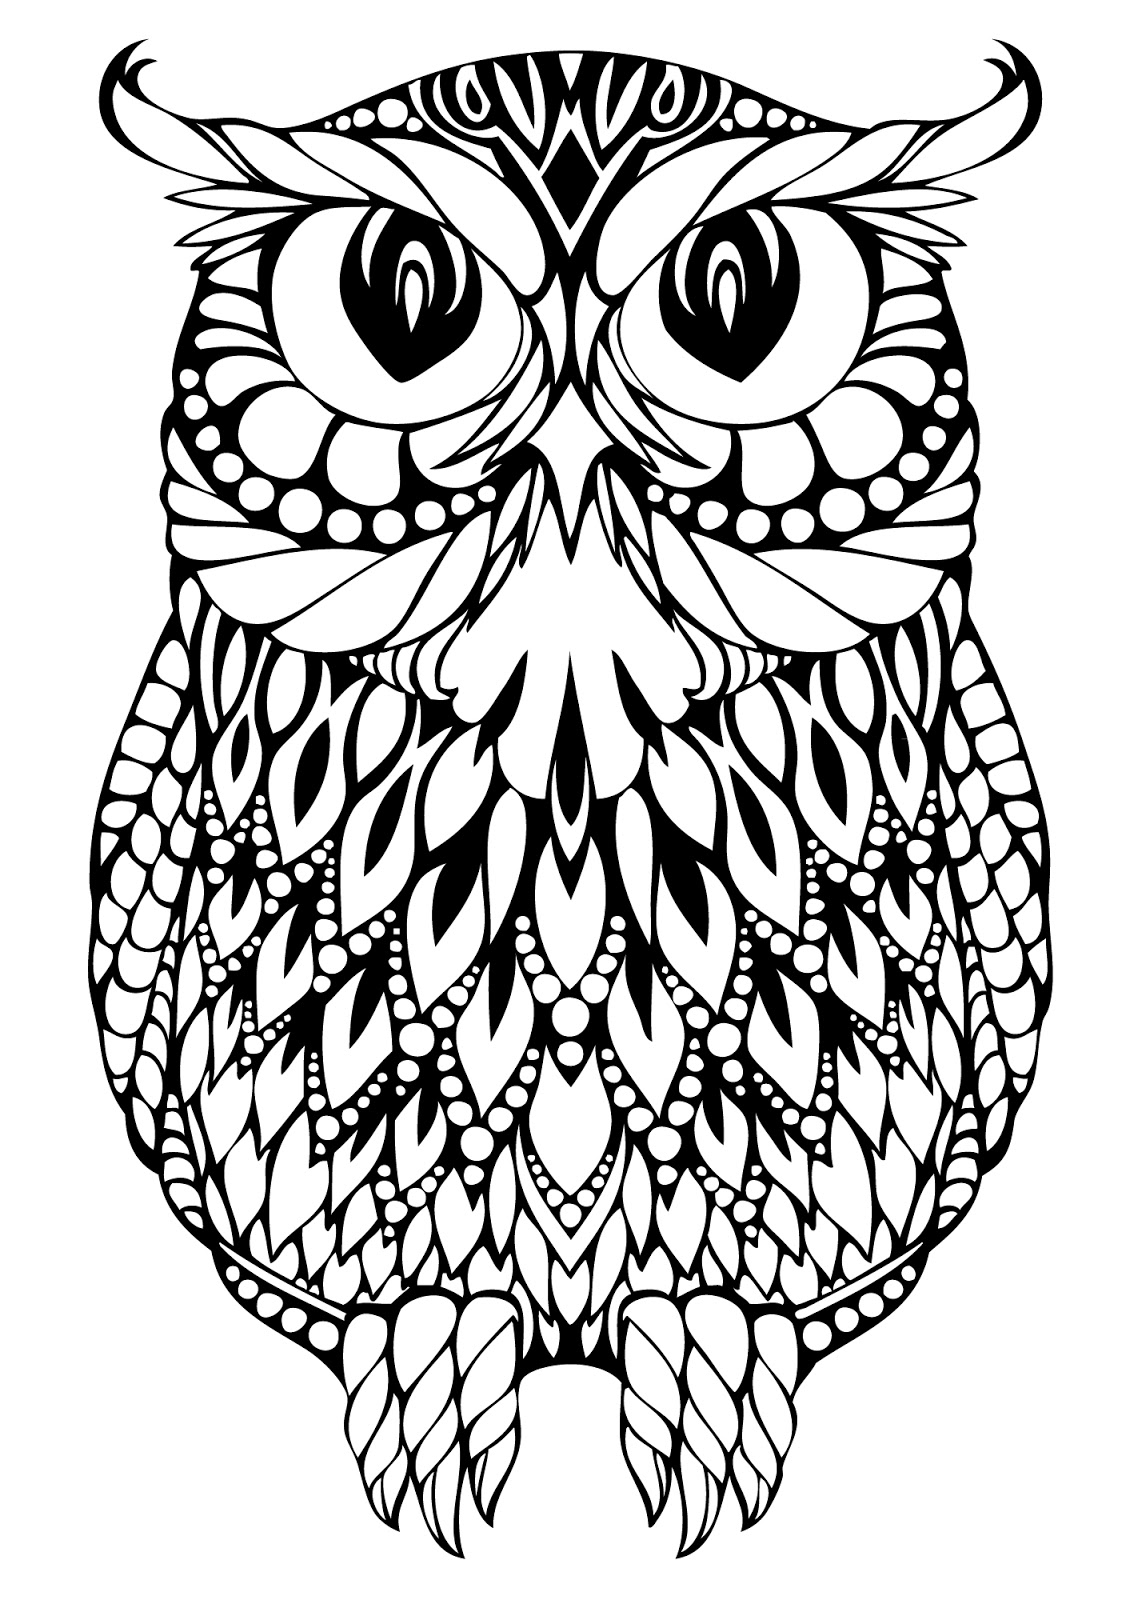 owl abstract coloring pages - photo#5